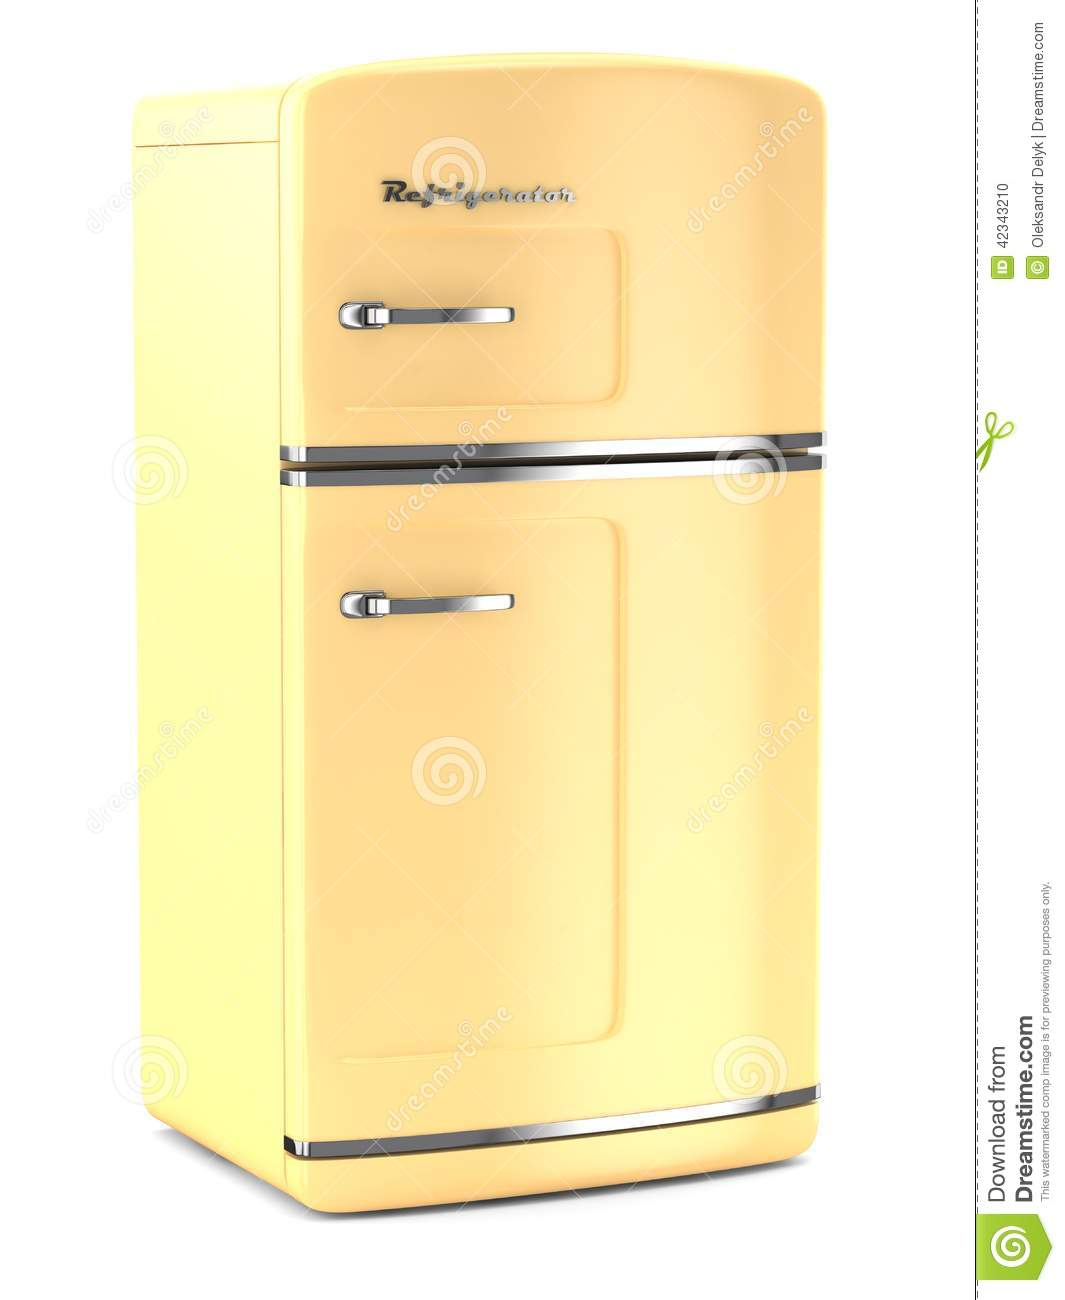 Retro Fridge On White Background Stock Illustration - Image: 42343210 | {Kühlschrank retro 30}